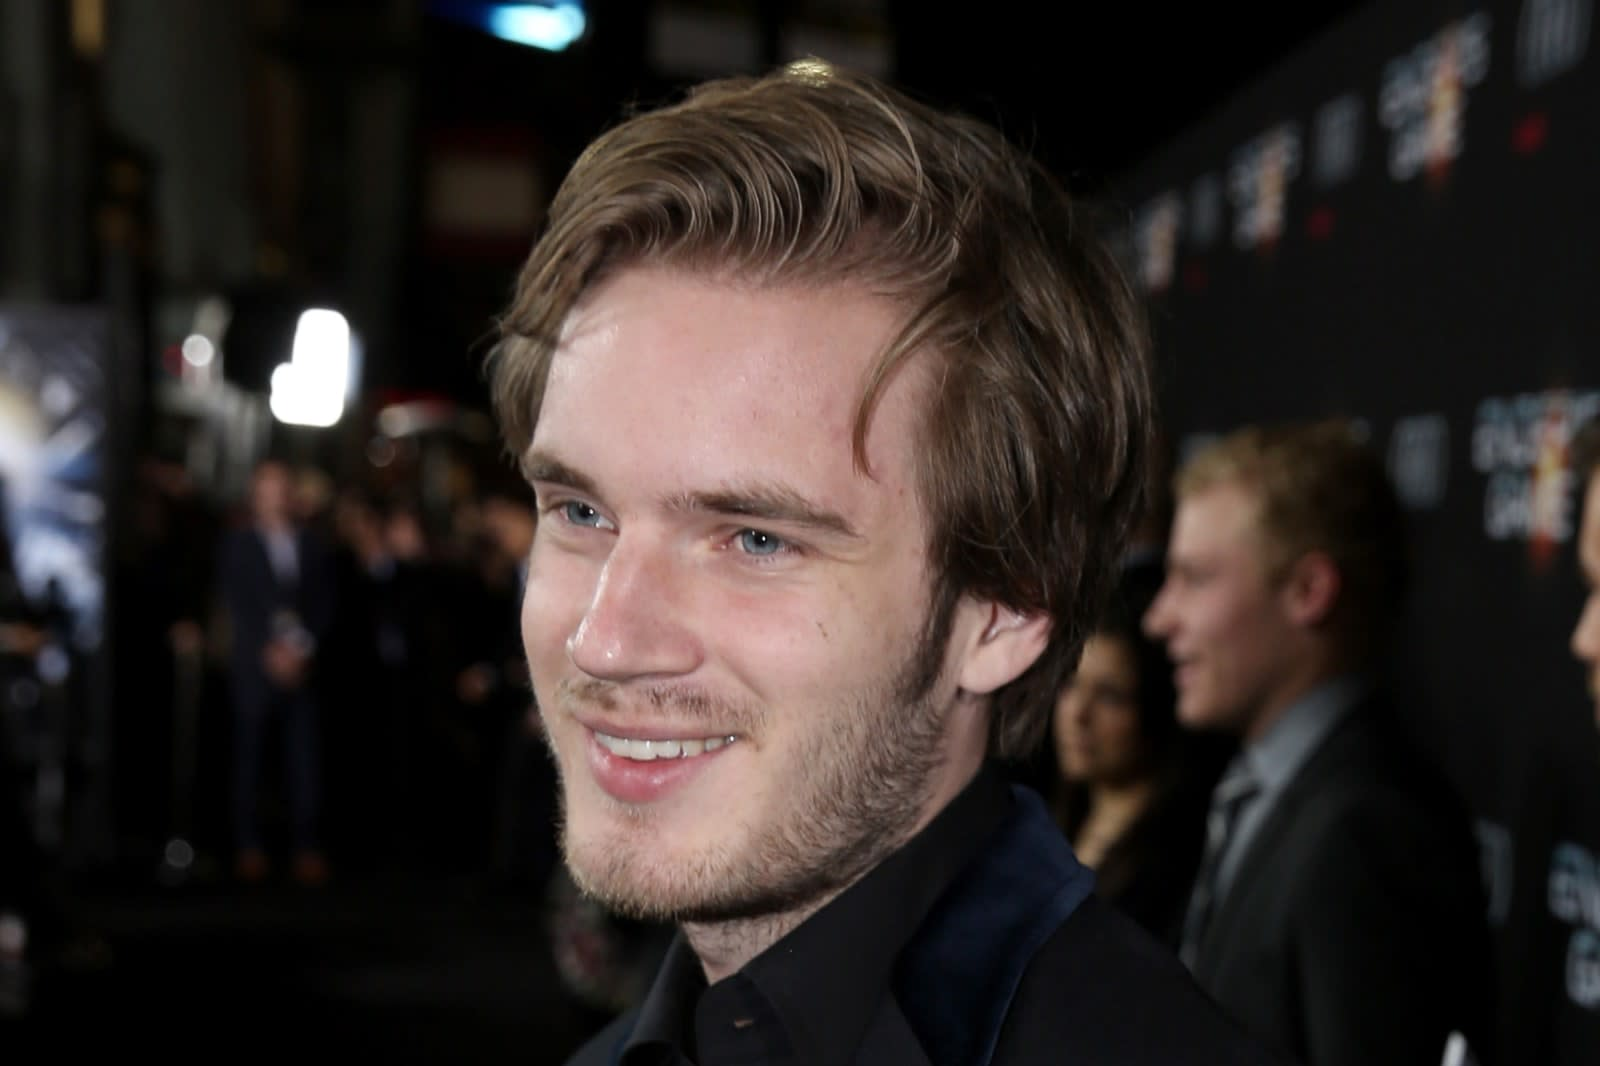 PewDiePie is 'taking a break' from YouTube in 2020